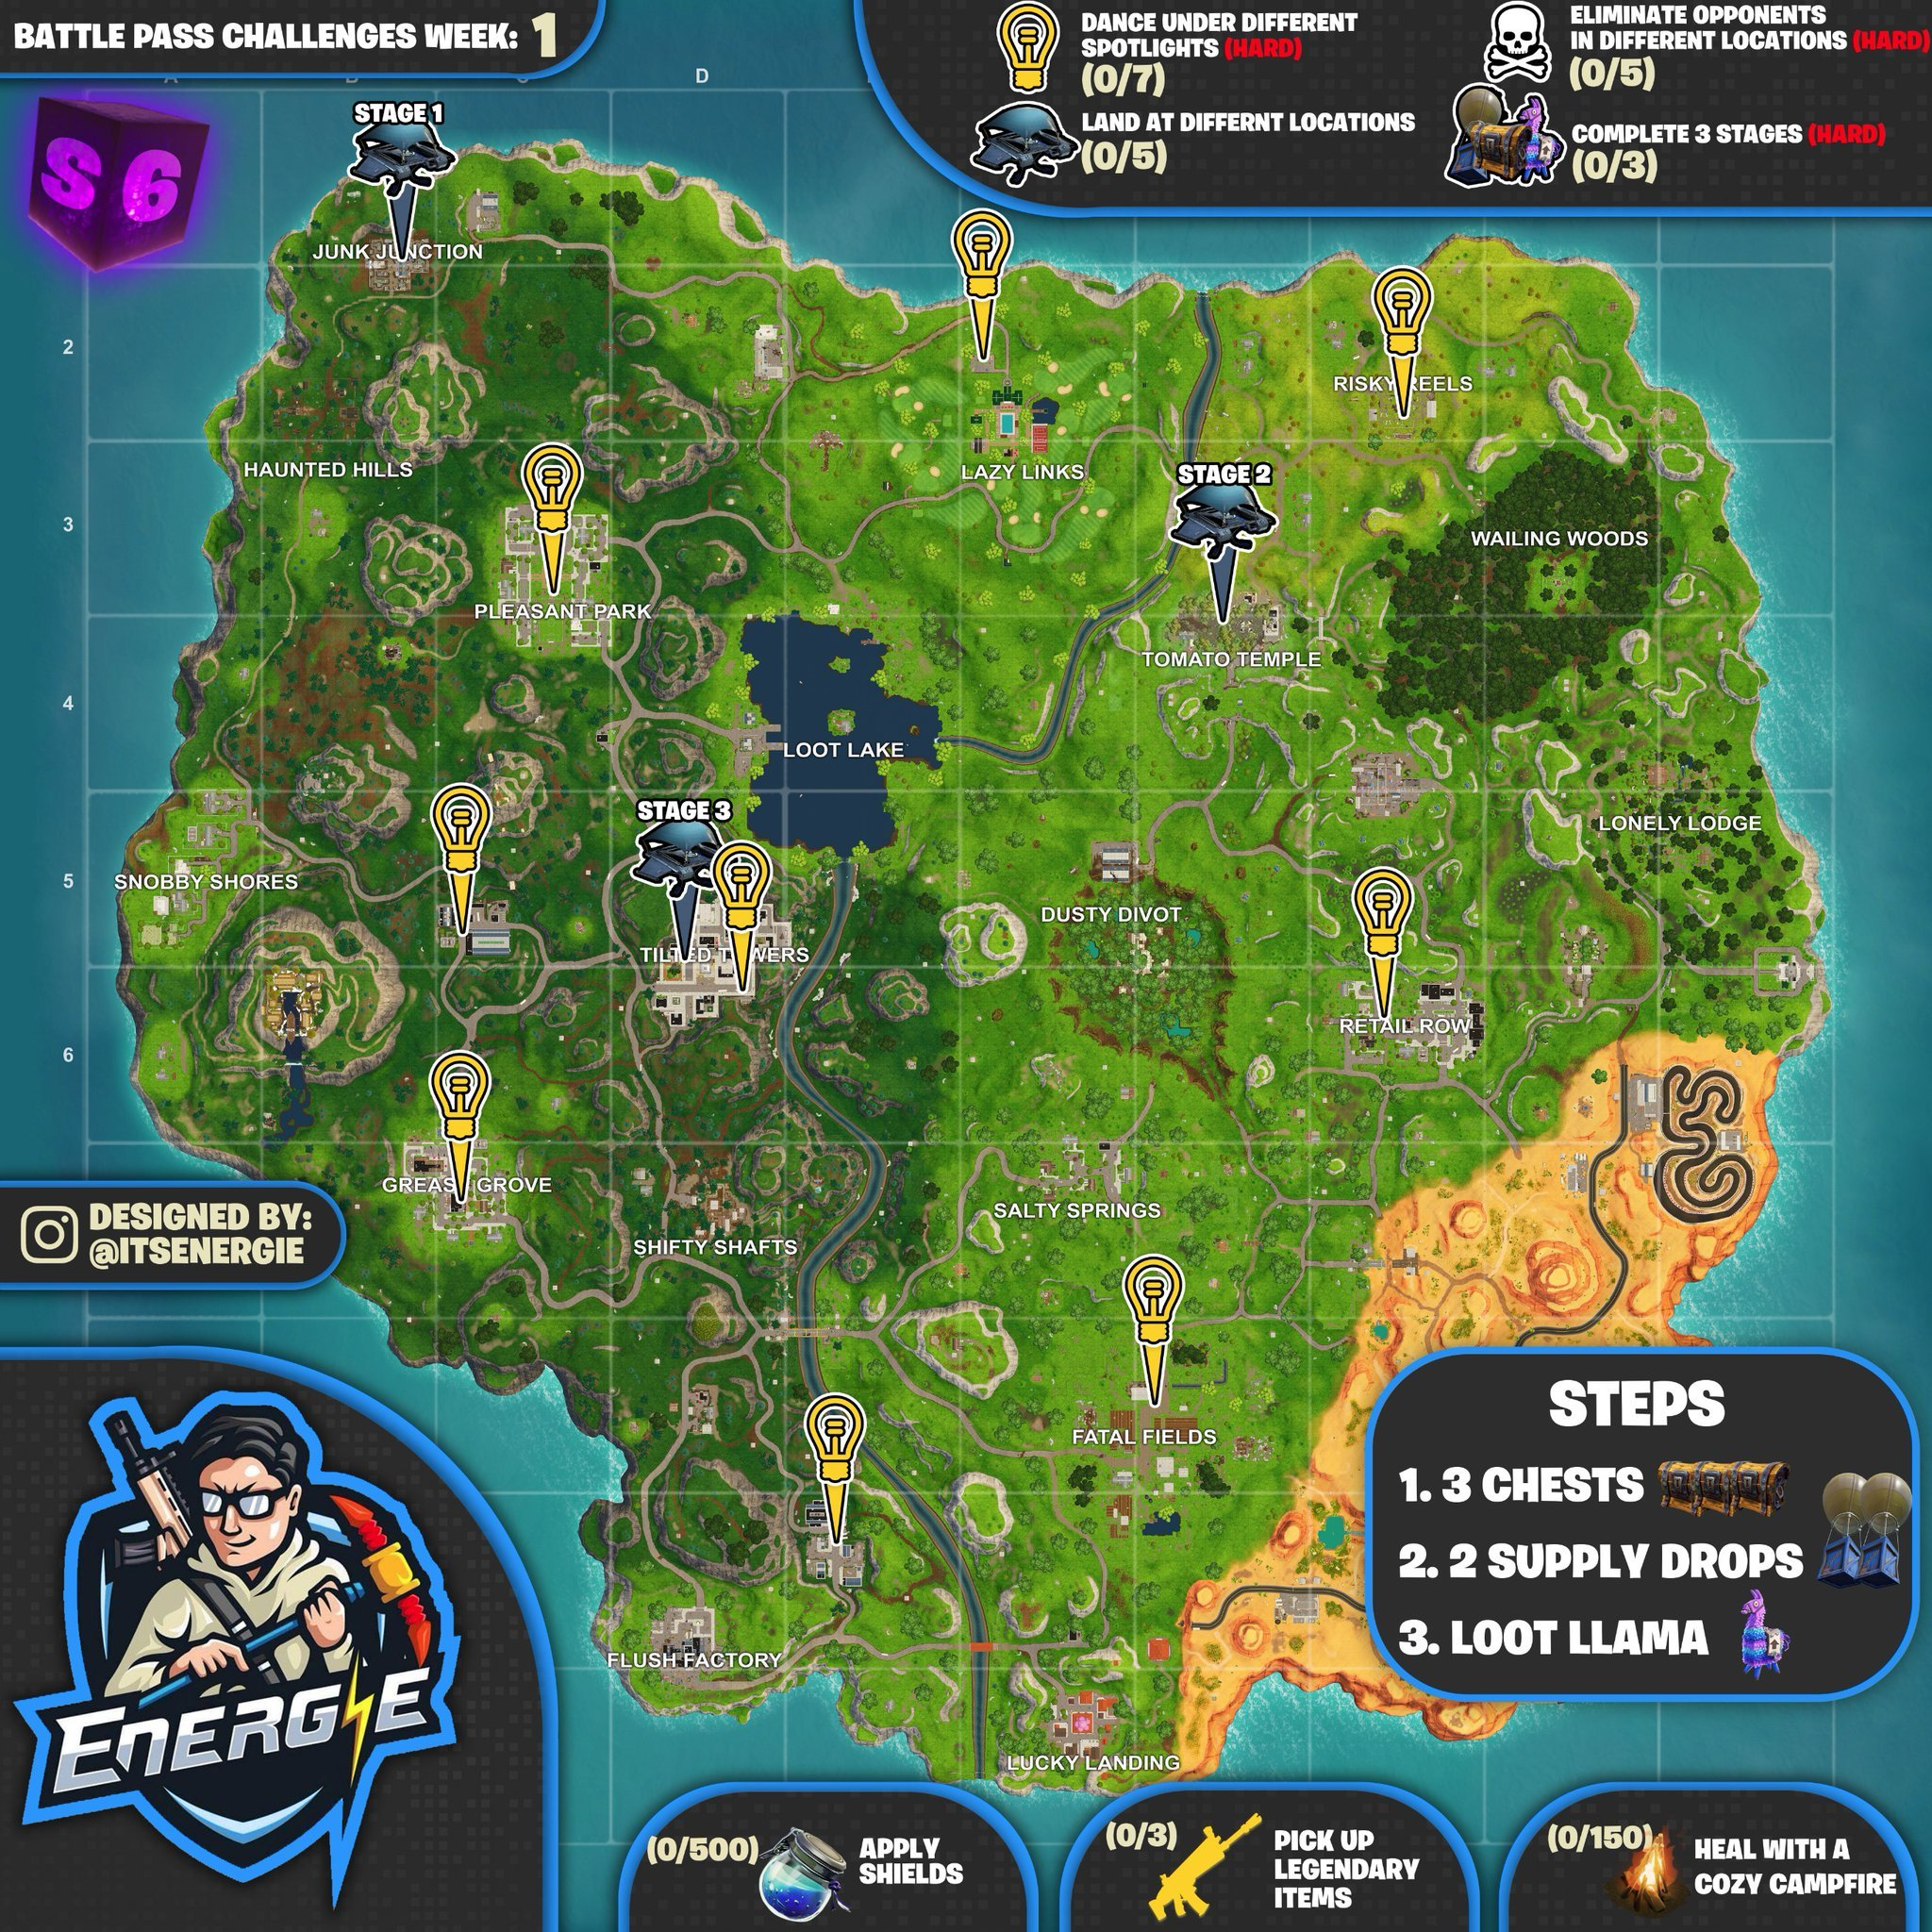 Cheat Sheet Map For Fortnite Battle Royale Season 6 Week 1